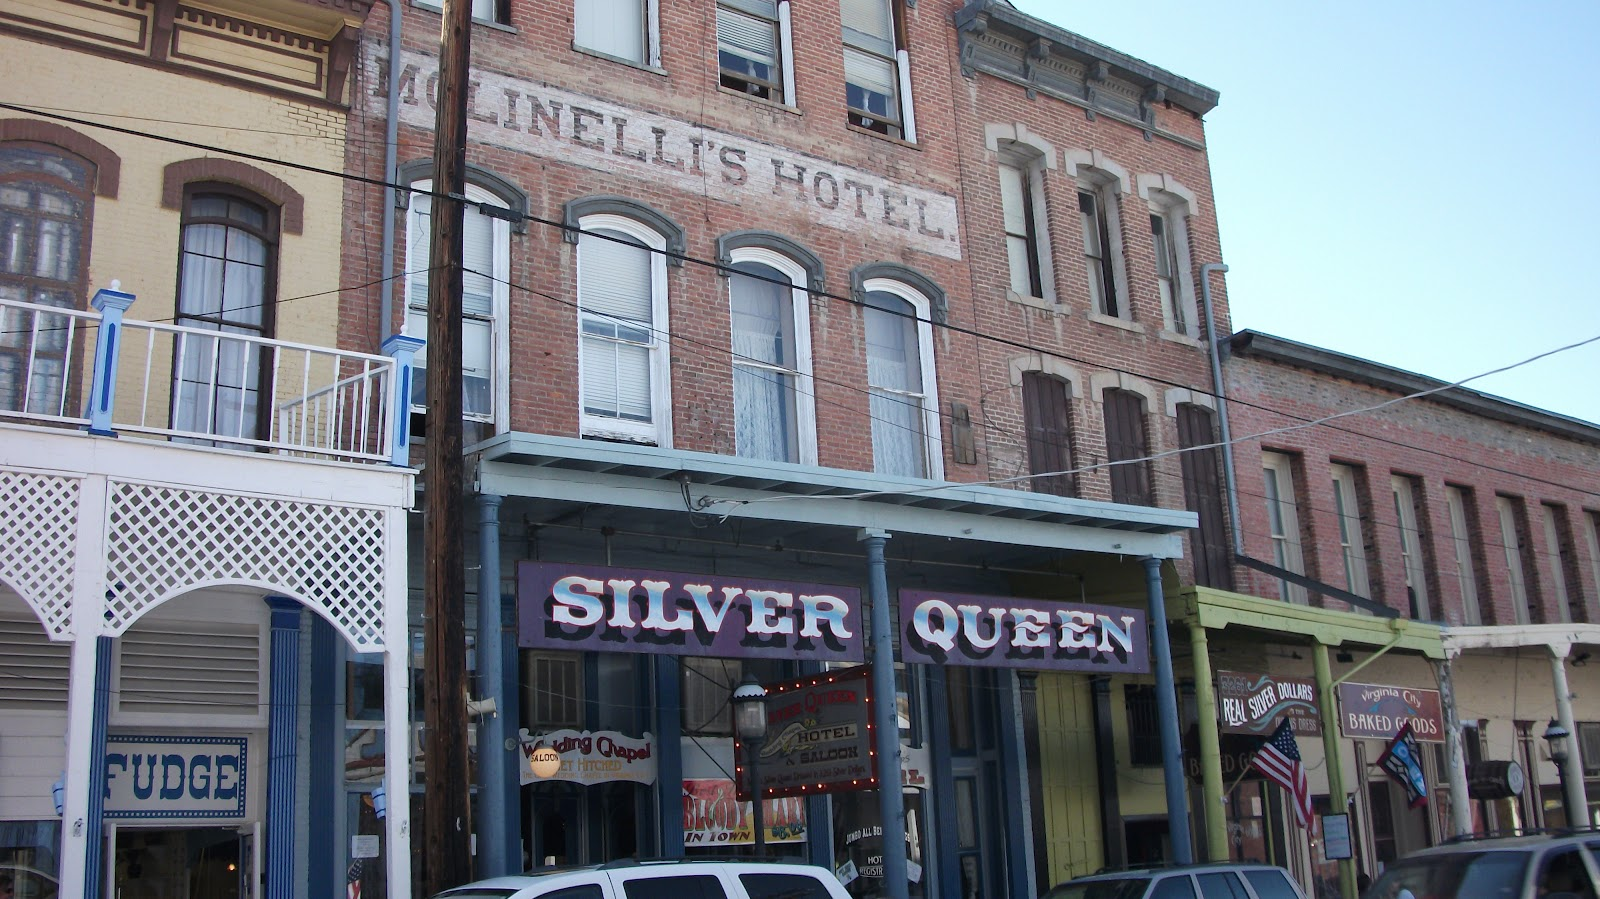 Evp Silver Queen Hotel Virginia City Nv 7 12 Voice To 25